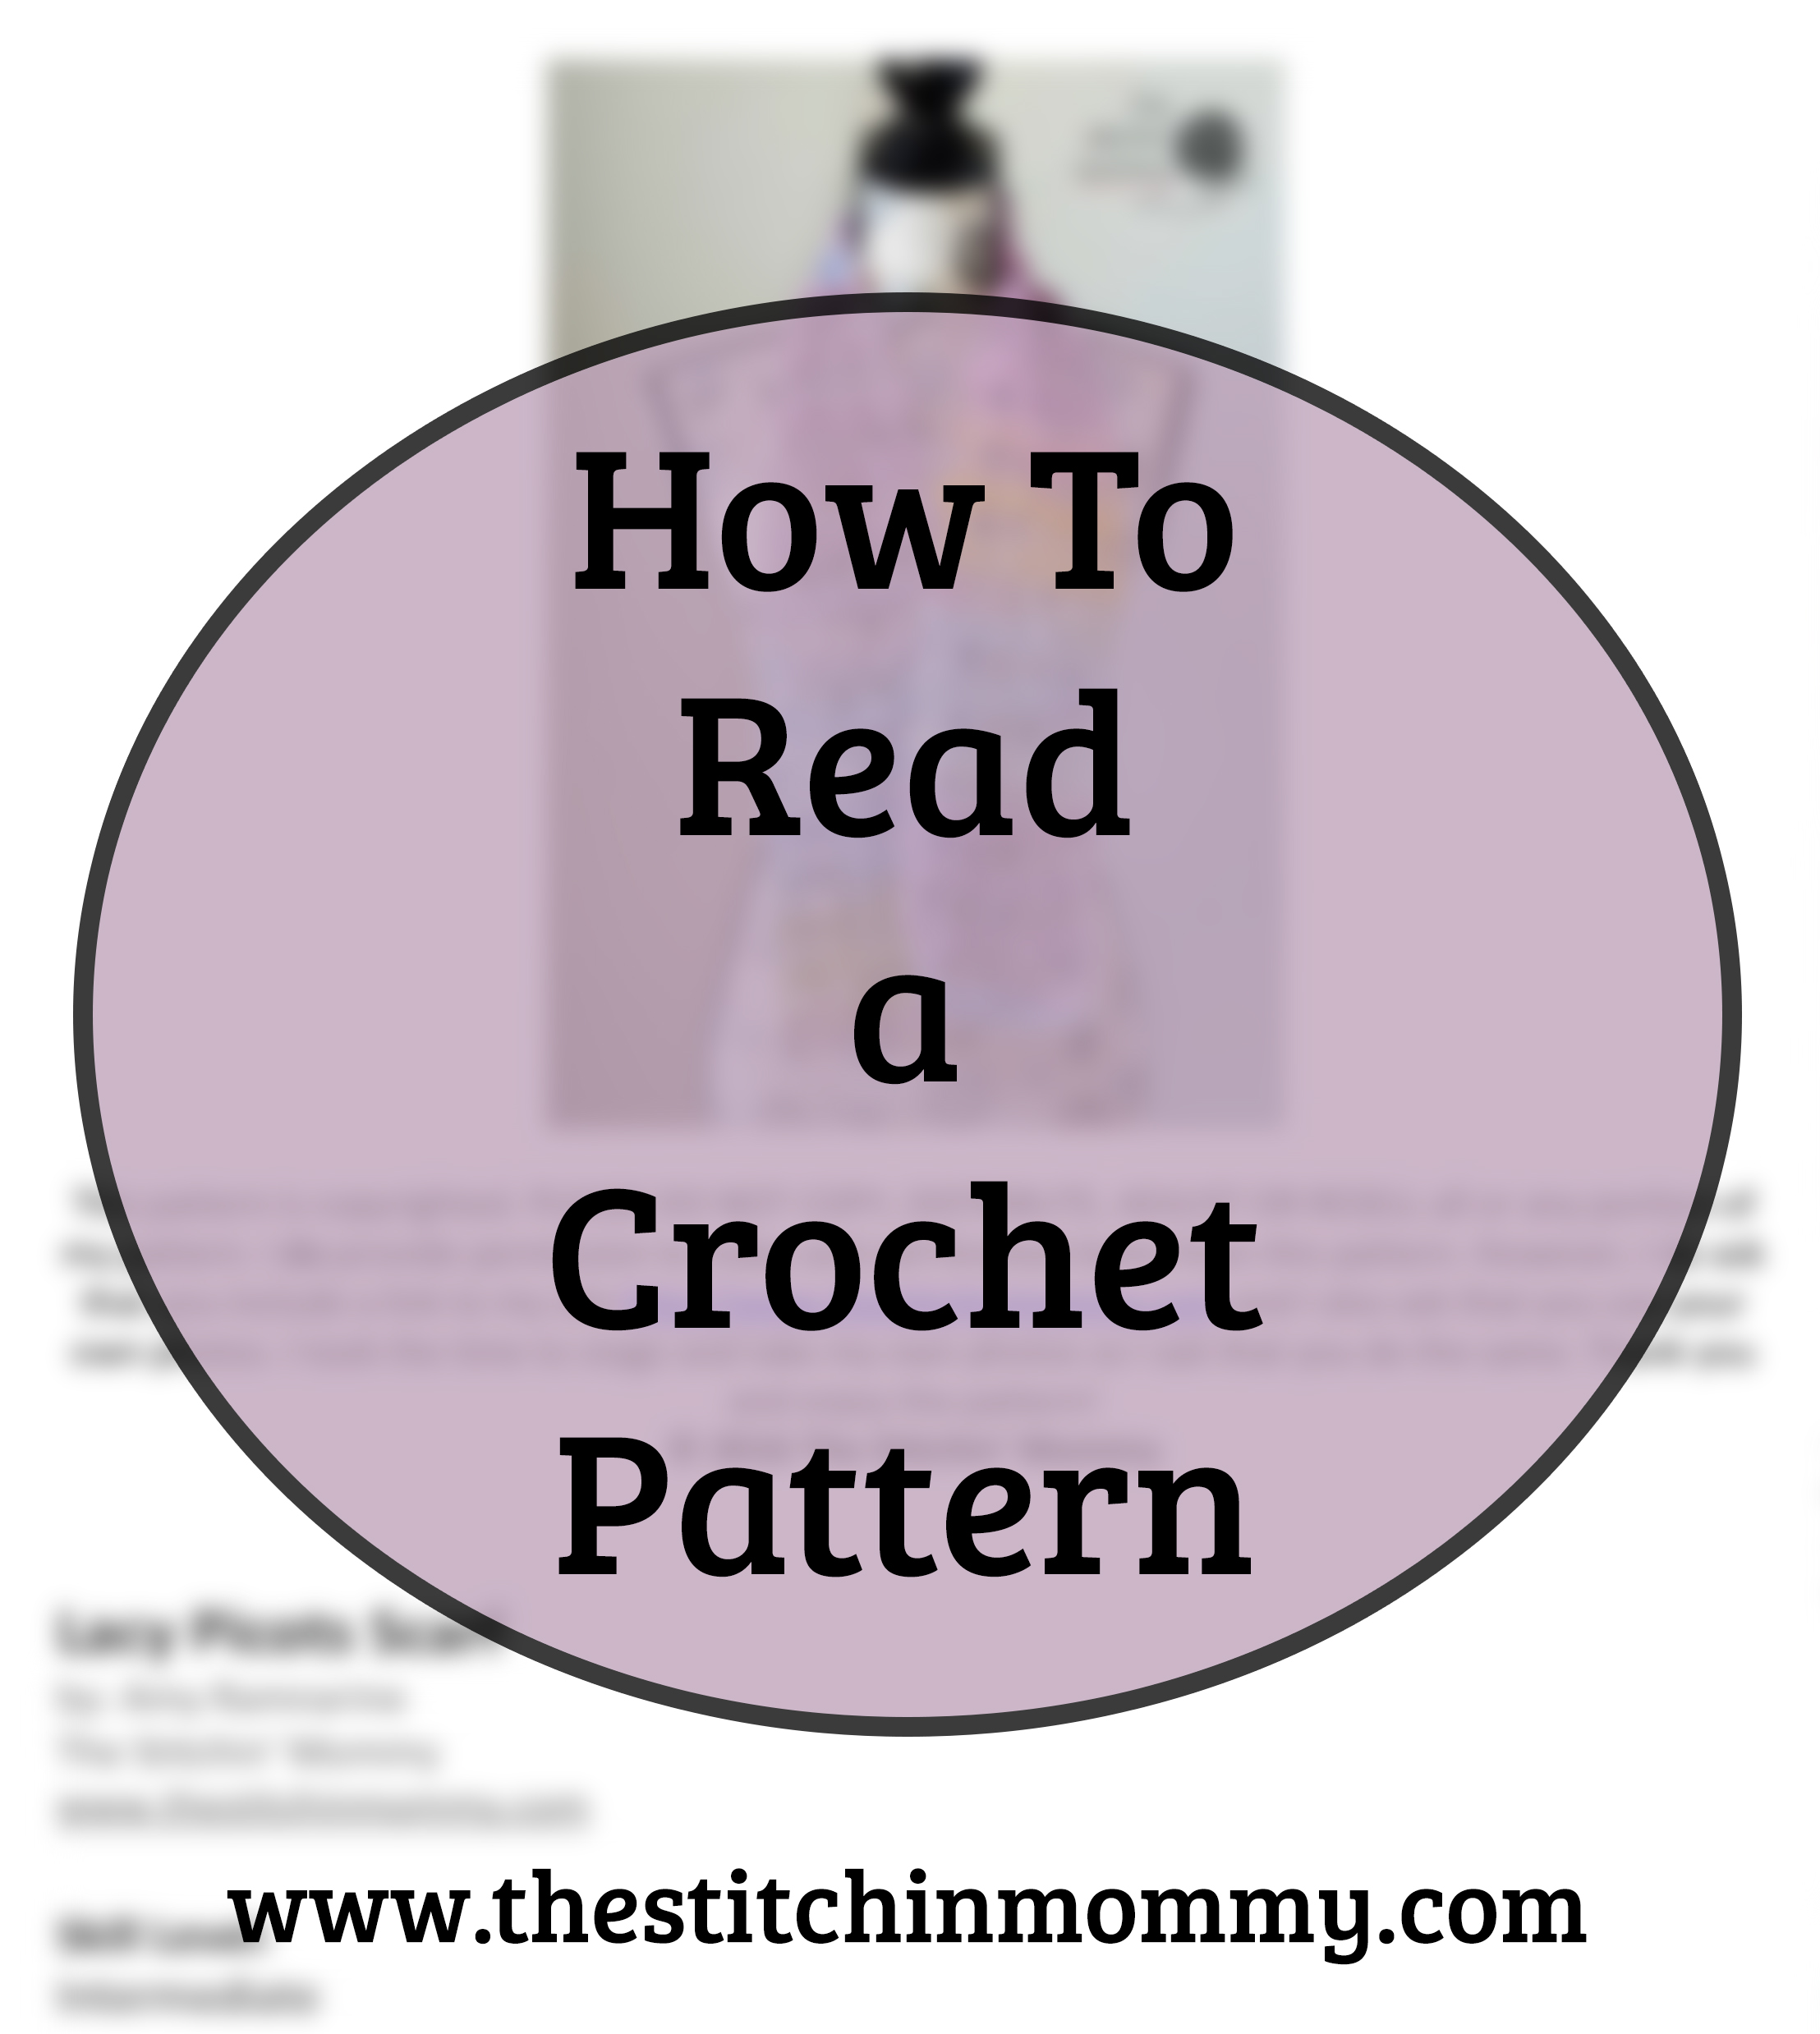 How To Read A Crochet Pattern The Stitchin Mommy